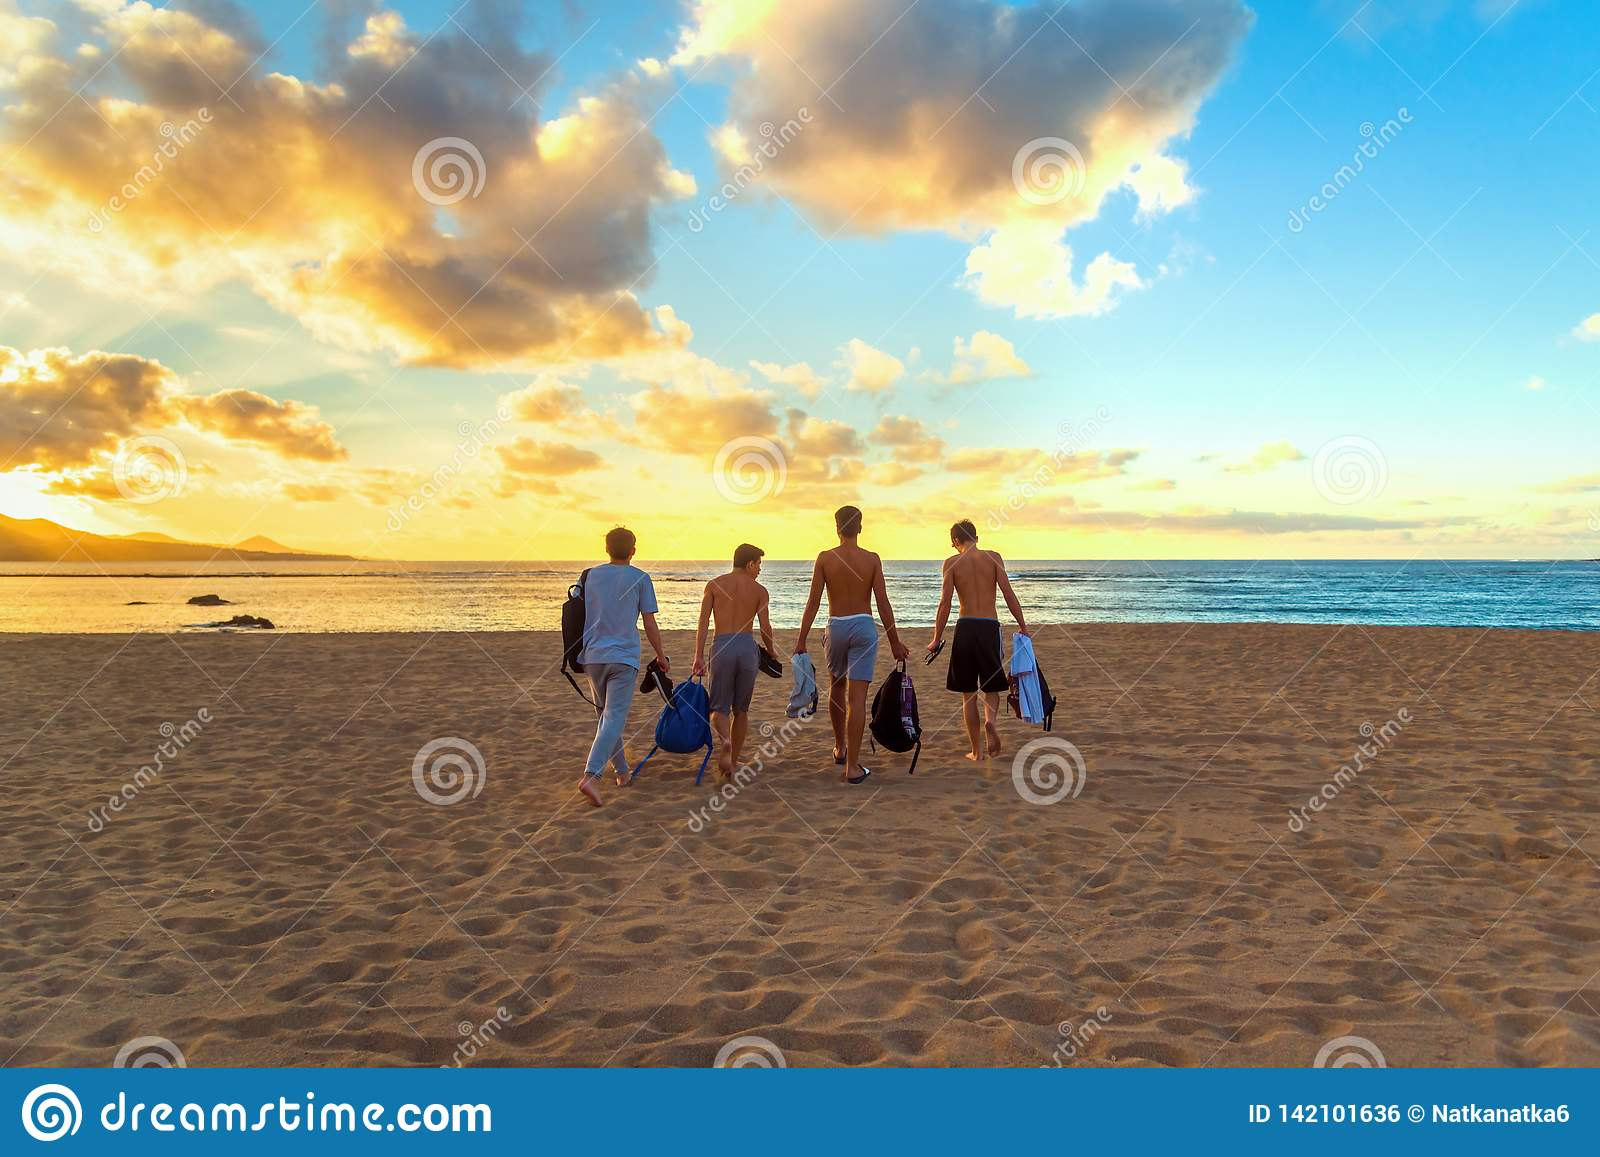 Tourism and travel. Canary Islands